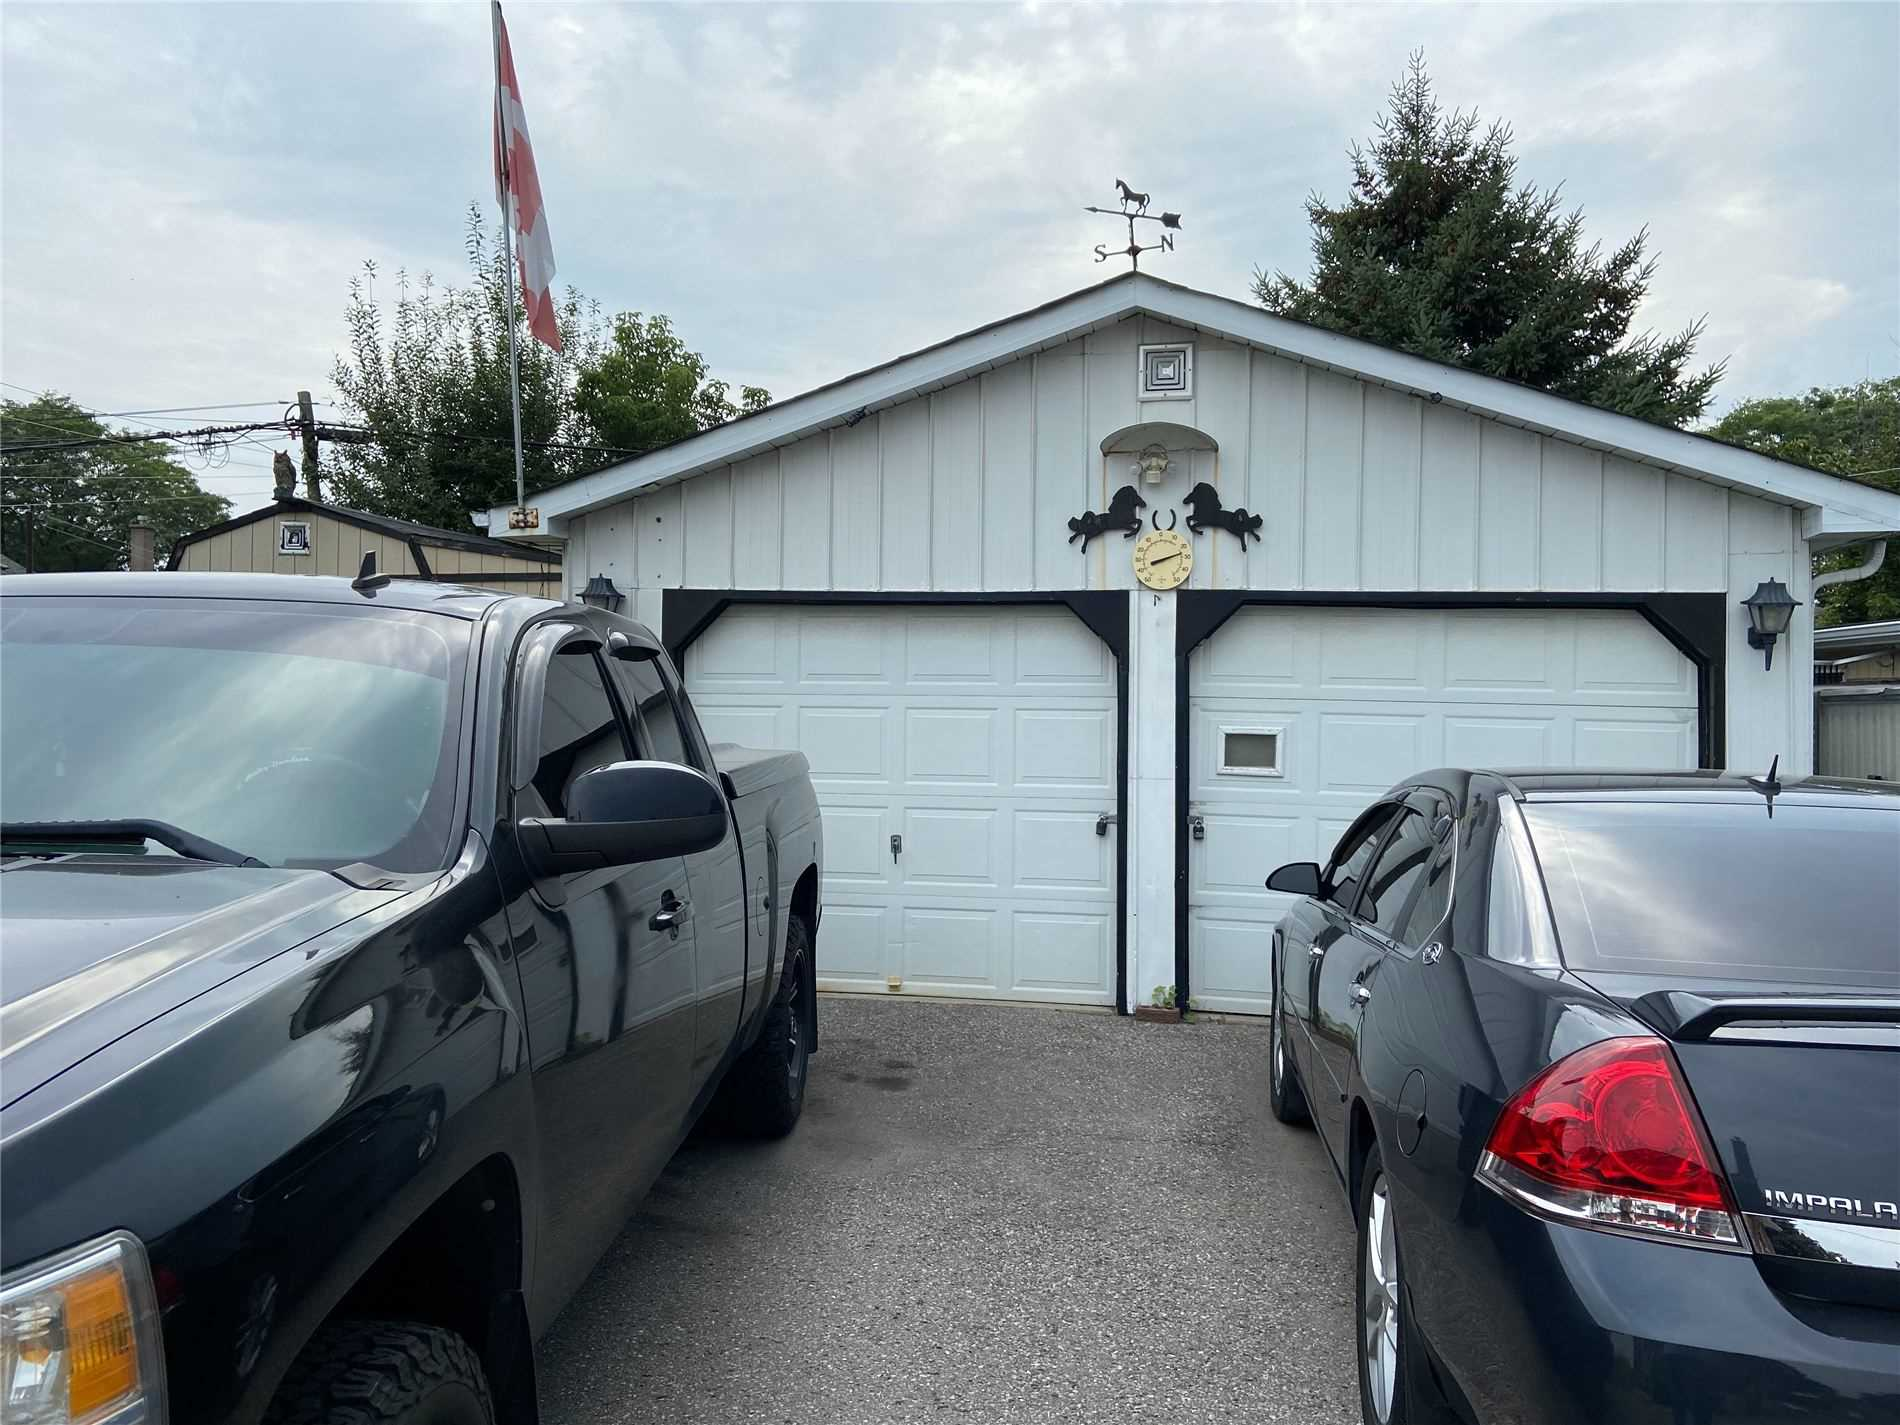 272 Guelph St, Oshawa, Ontario L1H 6J4, 2 Bedrooms Bedrooms, 6 Rooms Rooms,2 BathroomsBathrooms,Detached,For Sale,Guelph,E5352438